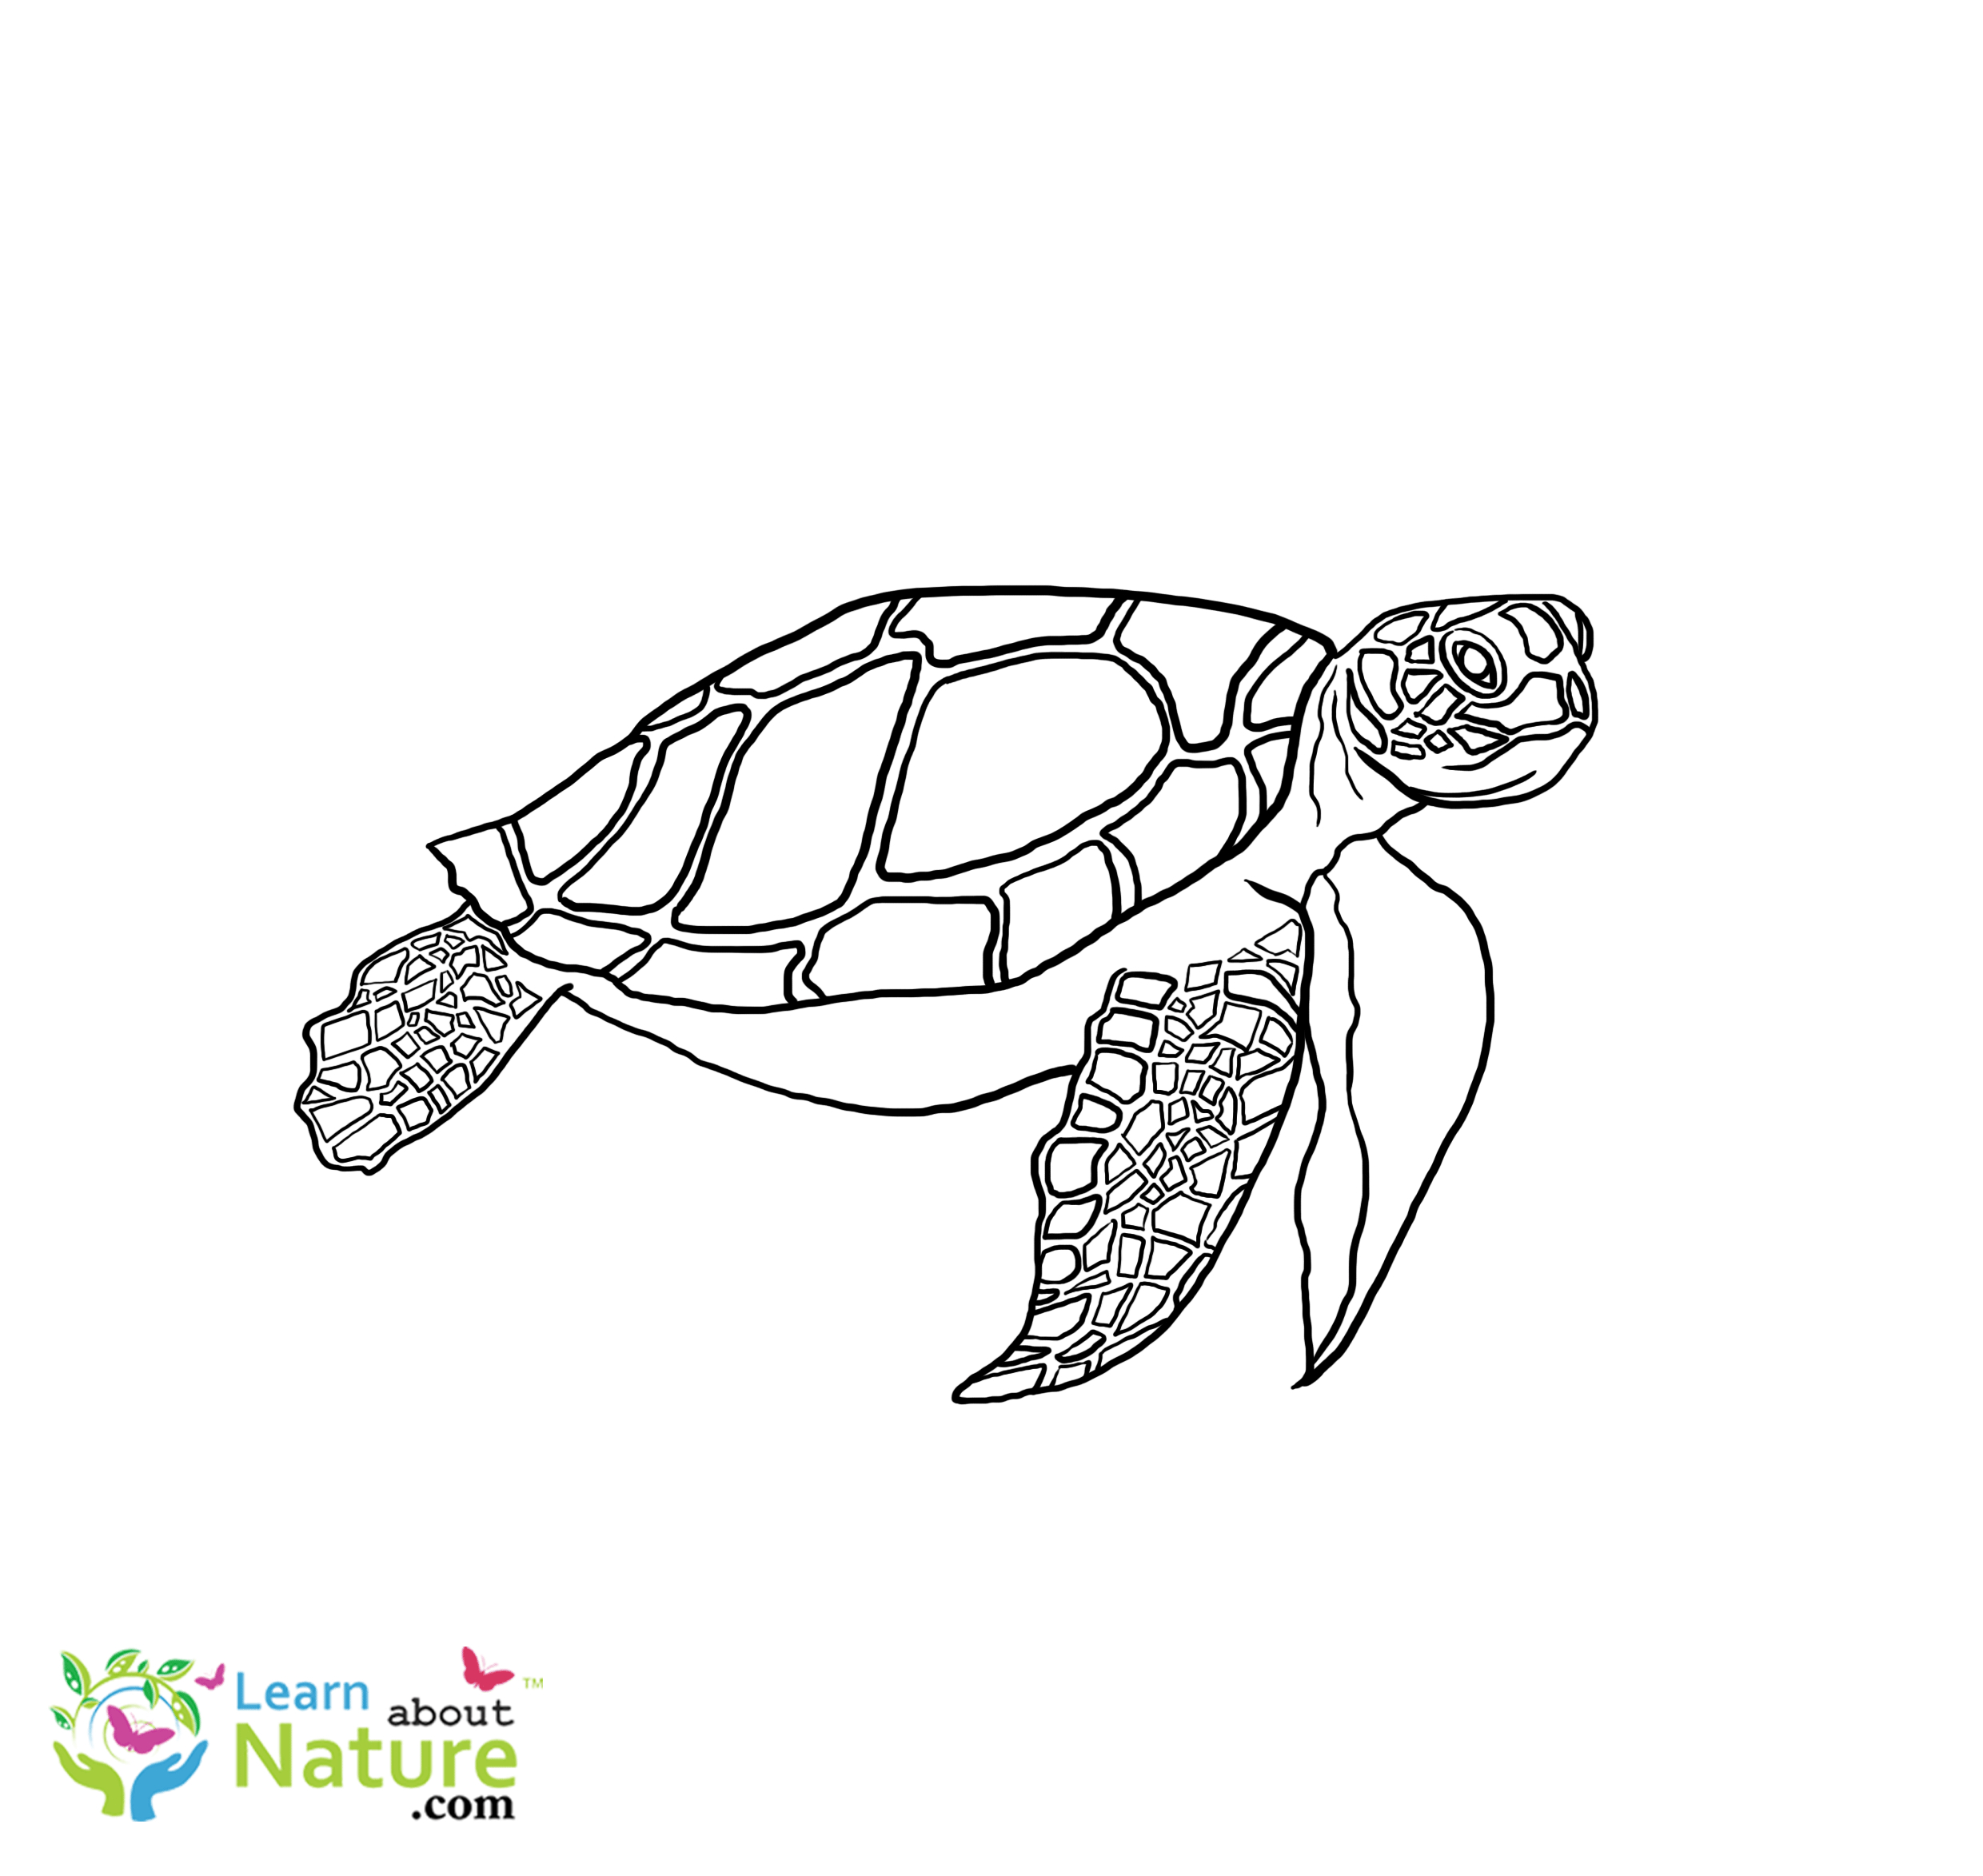 - Sea Turtle Coloring Page Sea Turtle Coloring Page 4 Learn About